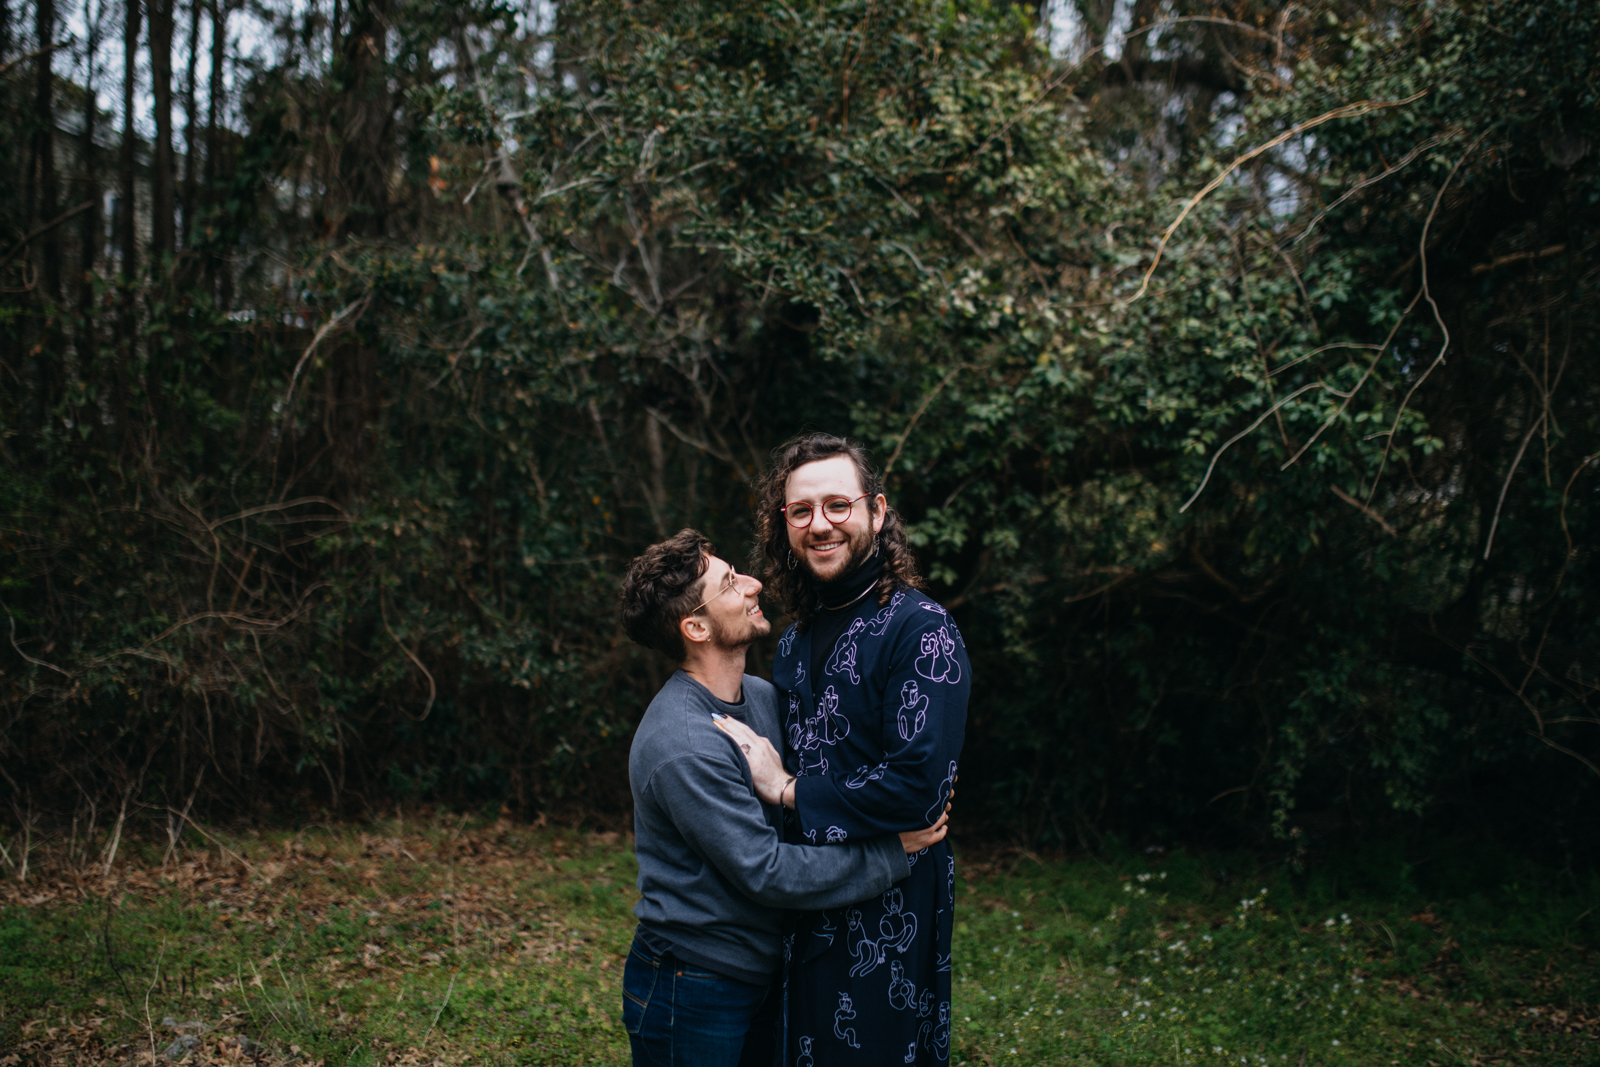 trans-couple-queer-photographer17.jpg